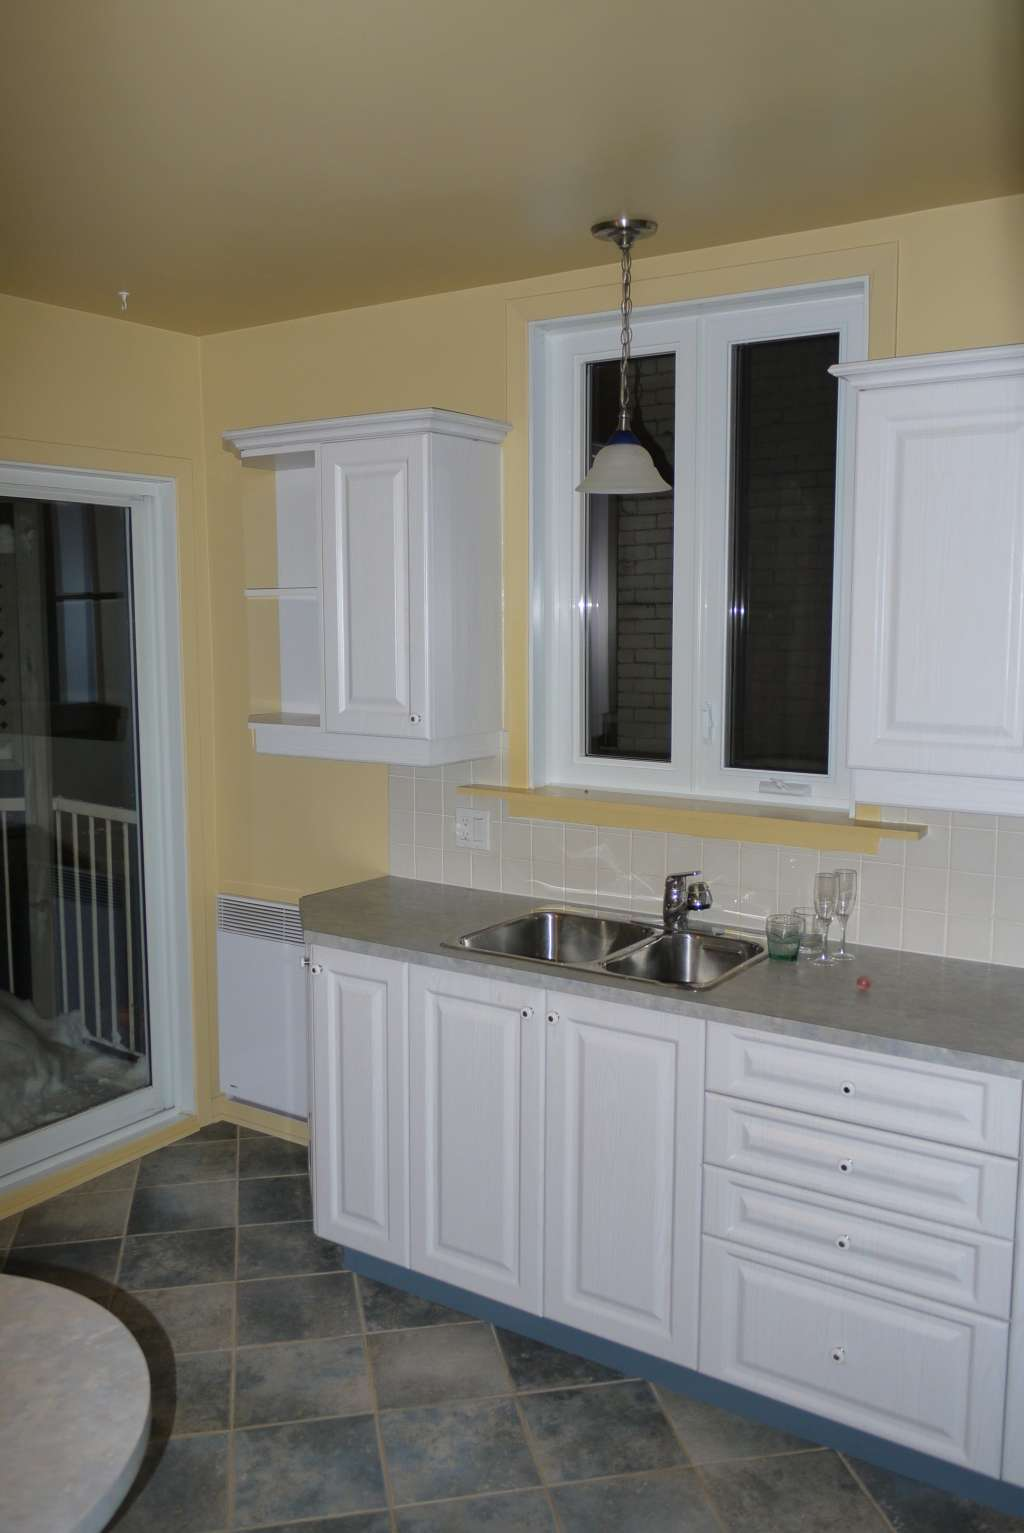 Before & After: An Industrial Kitchen Created with IKEA Cabinets